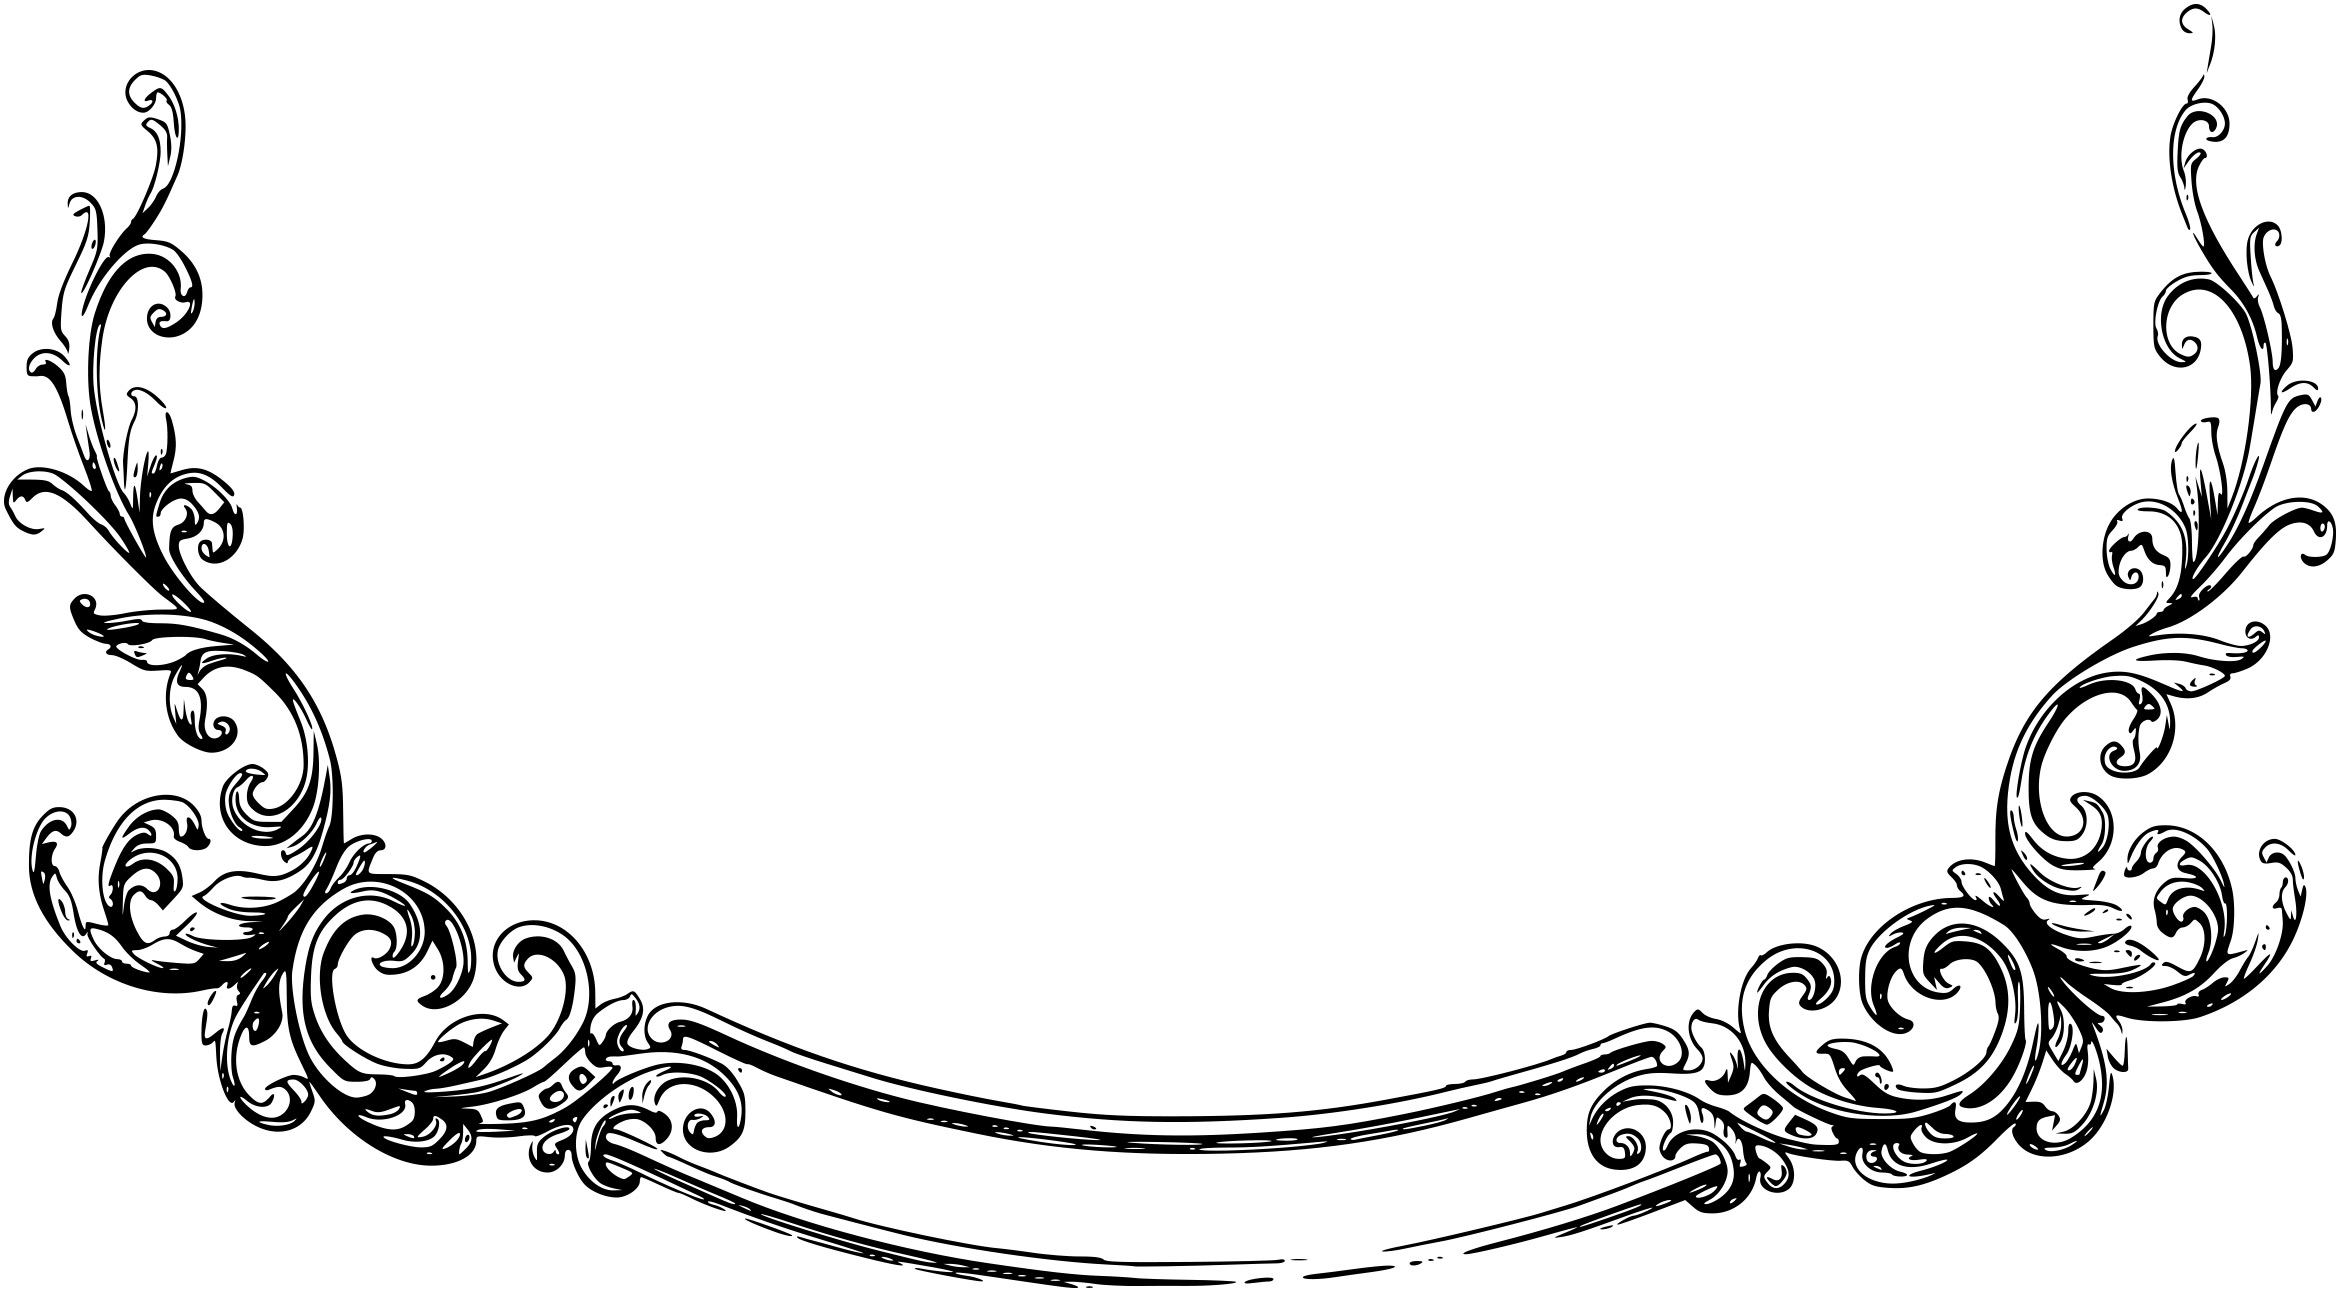 black scroll frame clipart #19